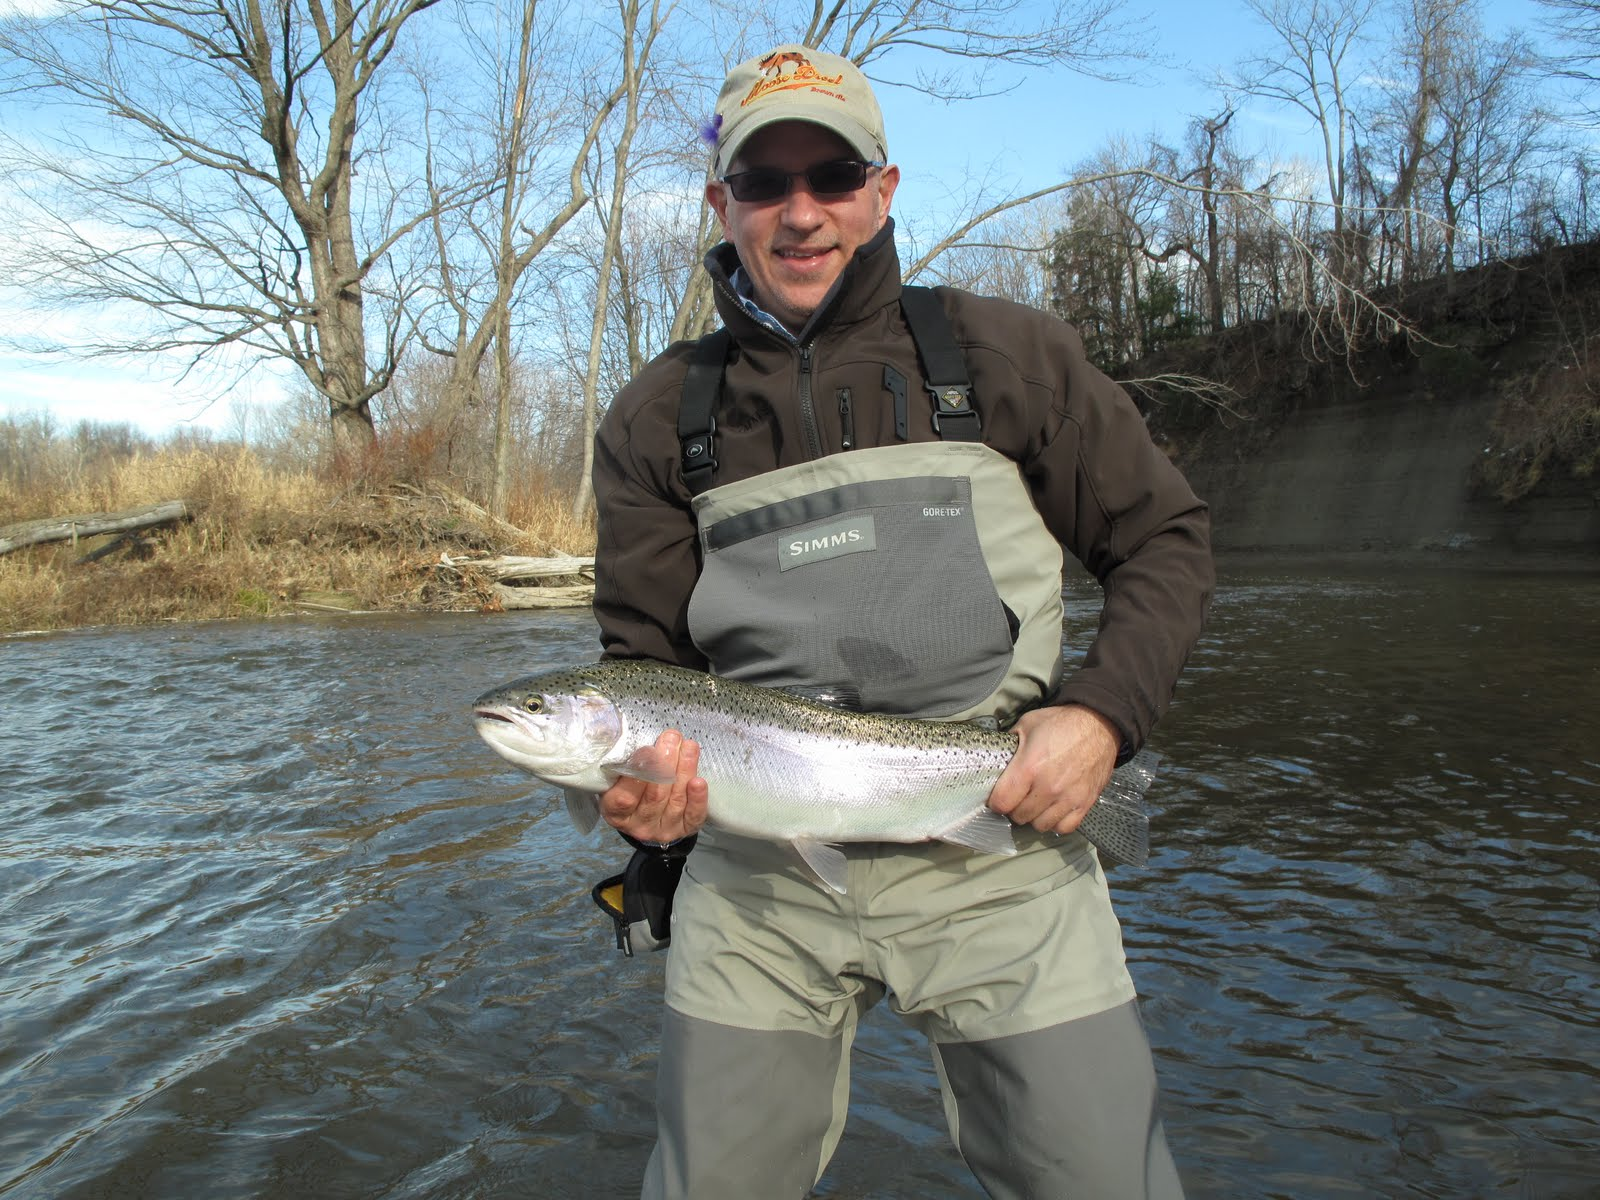 Chagrin river outfitters great gifts for the holidays for Fishing in cold weather